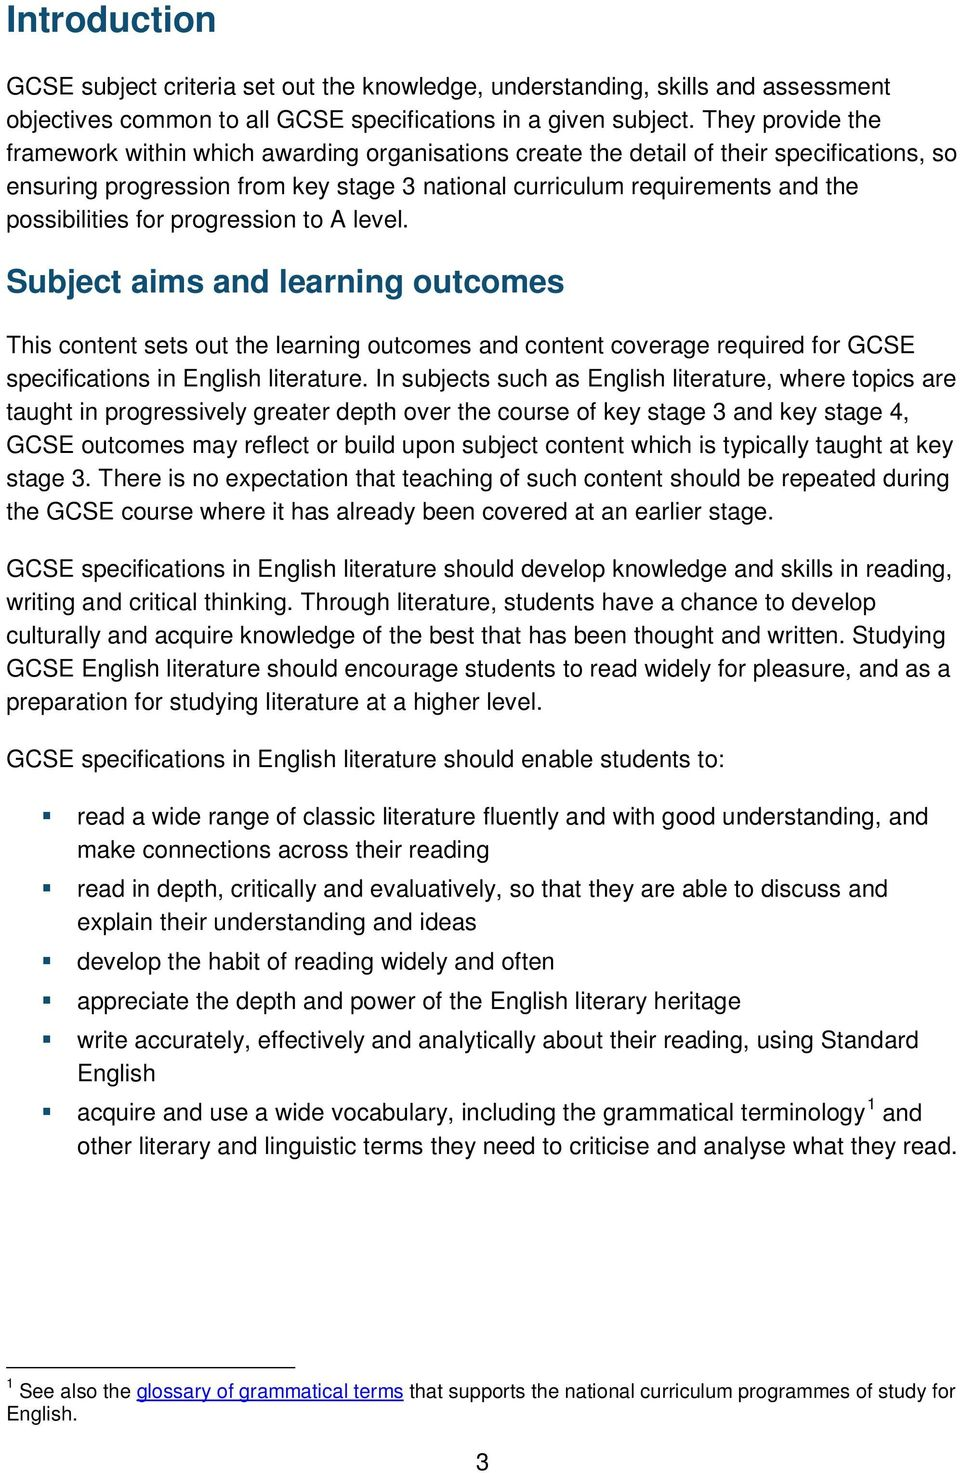 possibilities for progression to A level. Subject aims and learning outcomes This content sets out the learning outcomes and content coverage required for GCSE specifications in English literature.